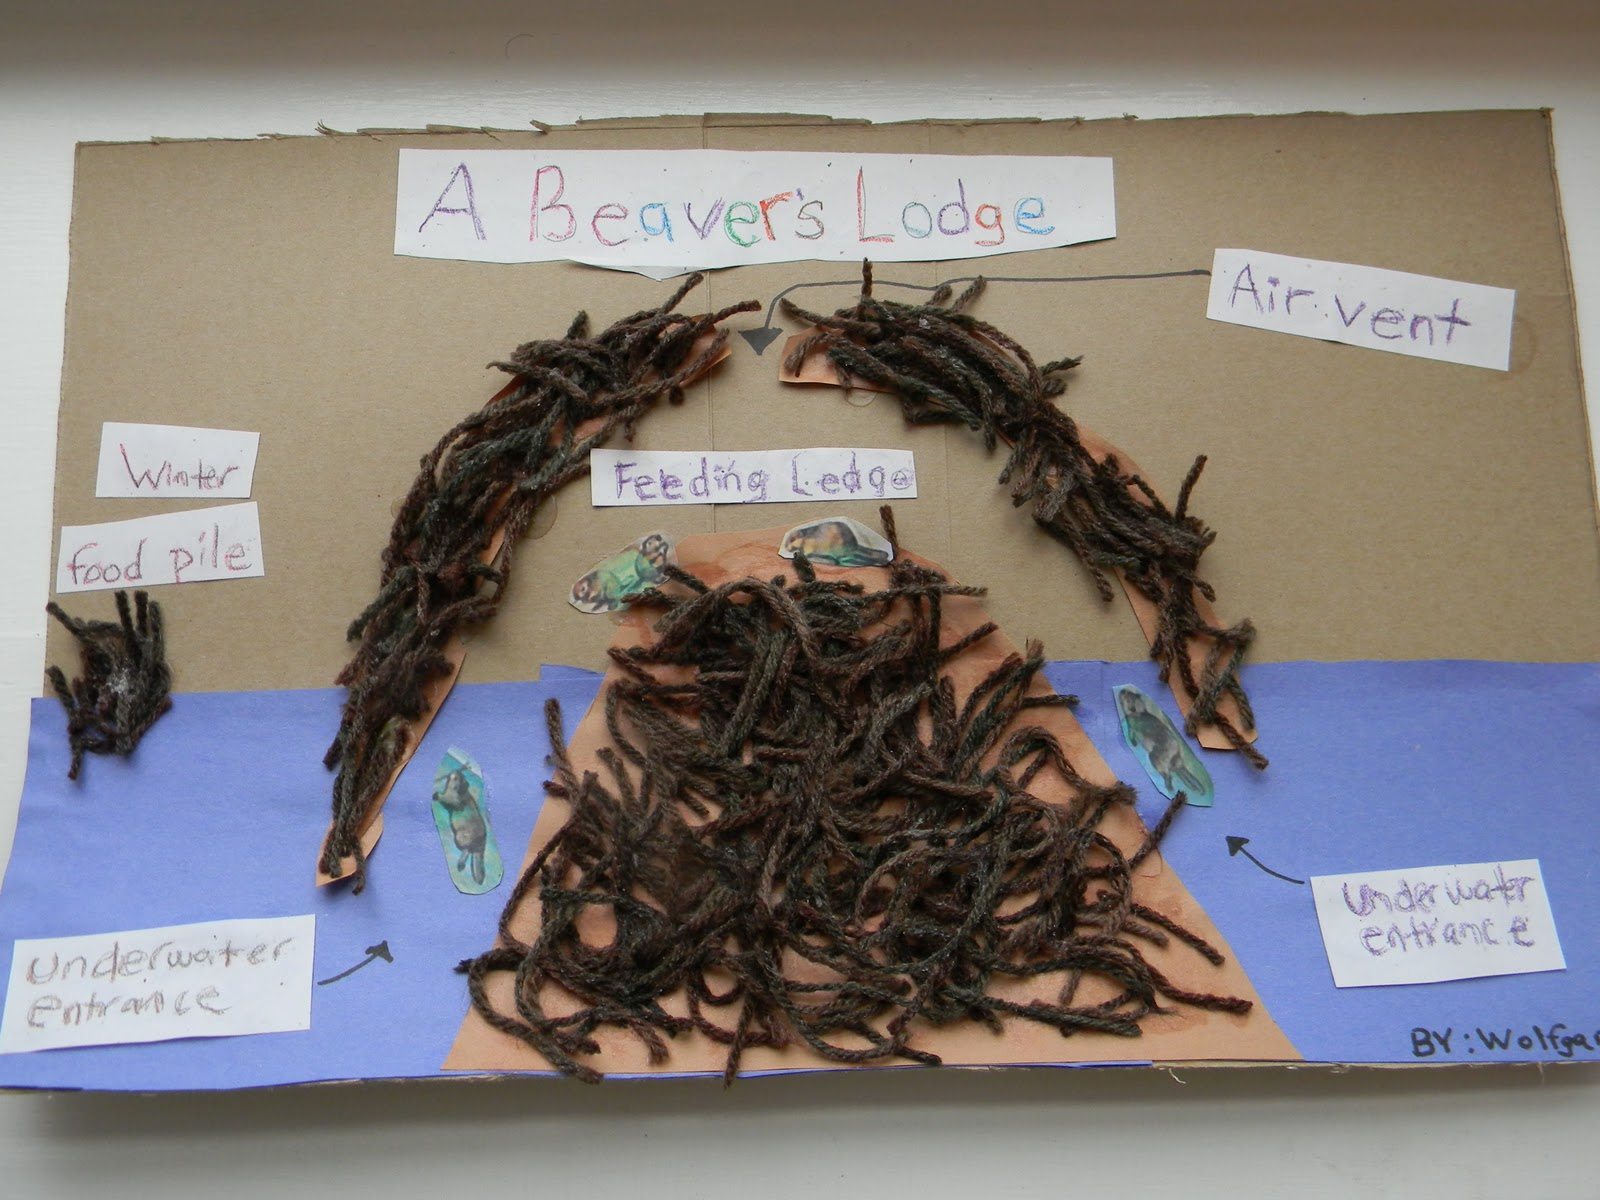 Beaver lodge diagram - photo#2